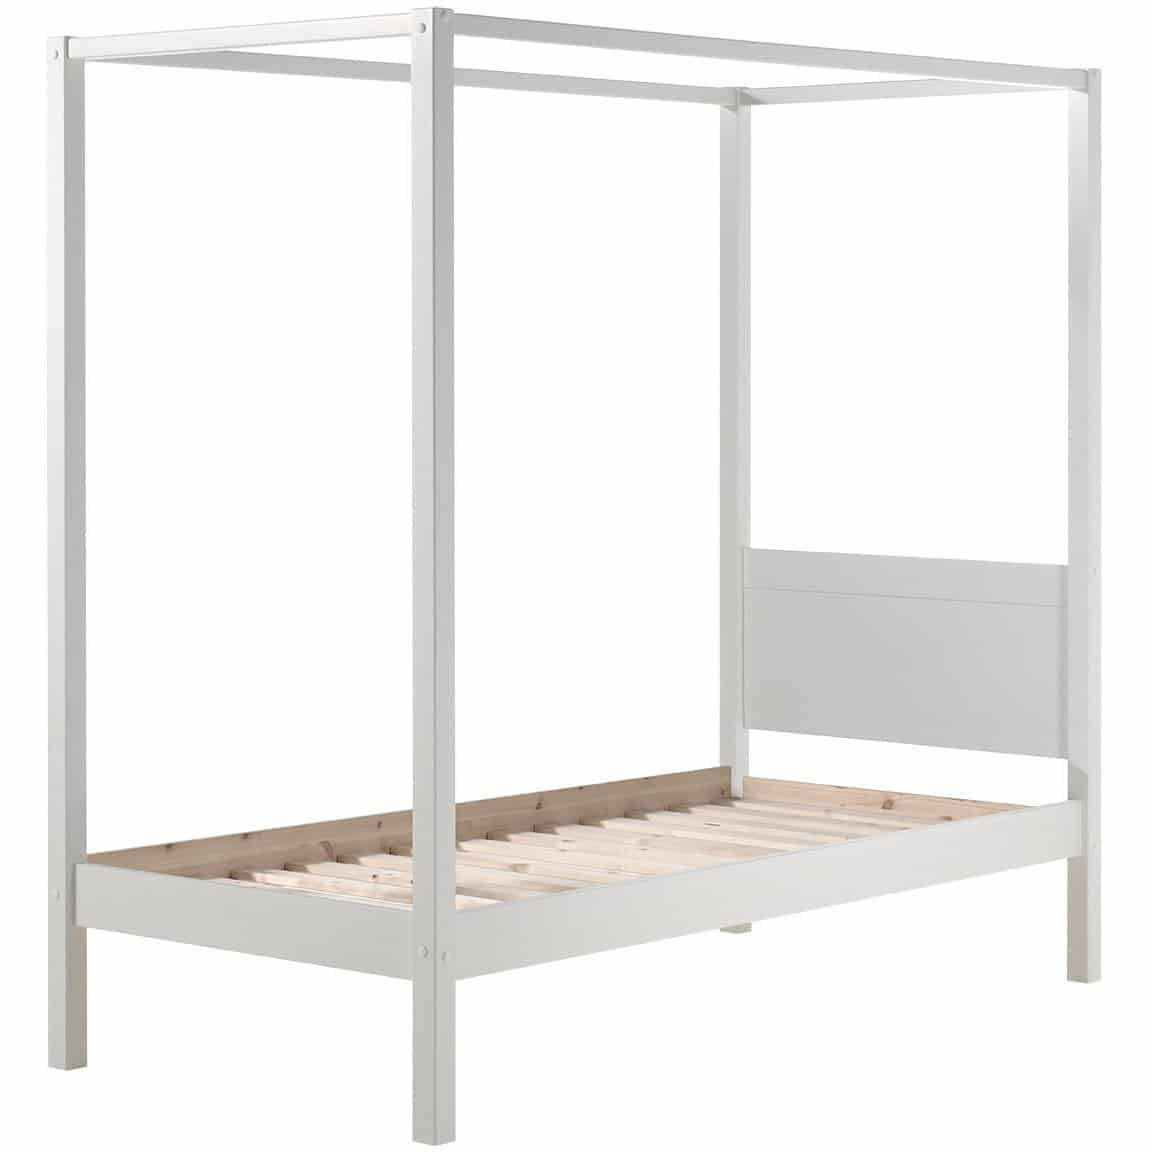 Pino - 4 Poster Single Bed  from interie furniture